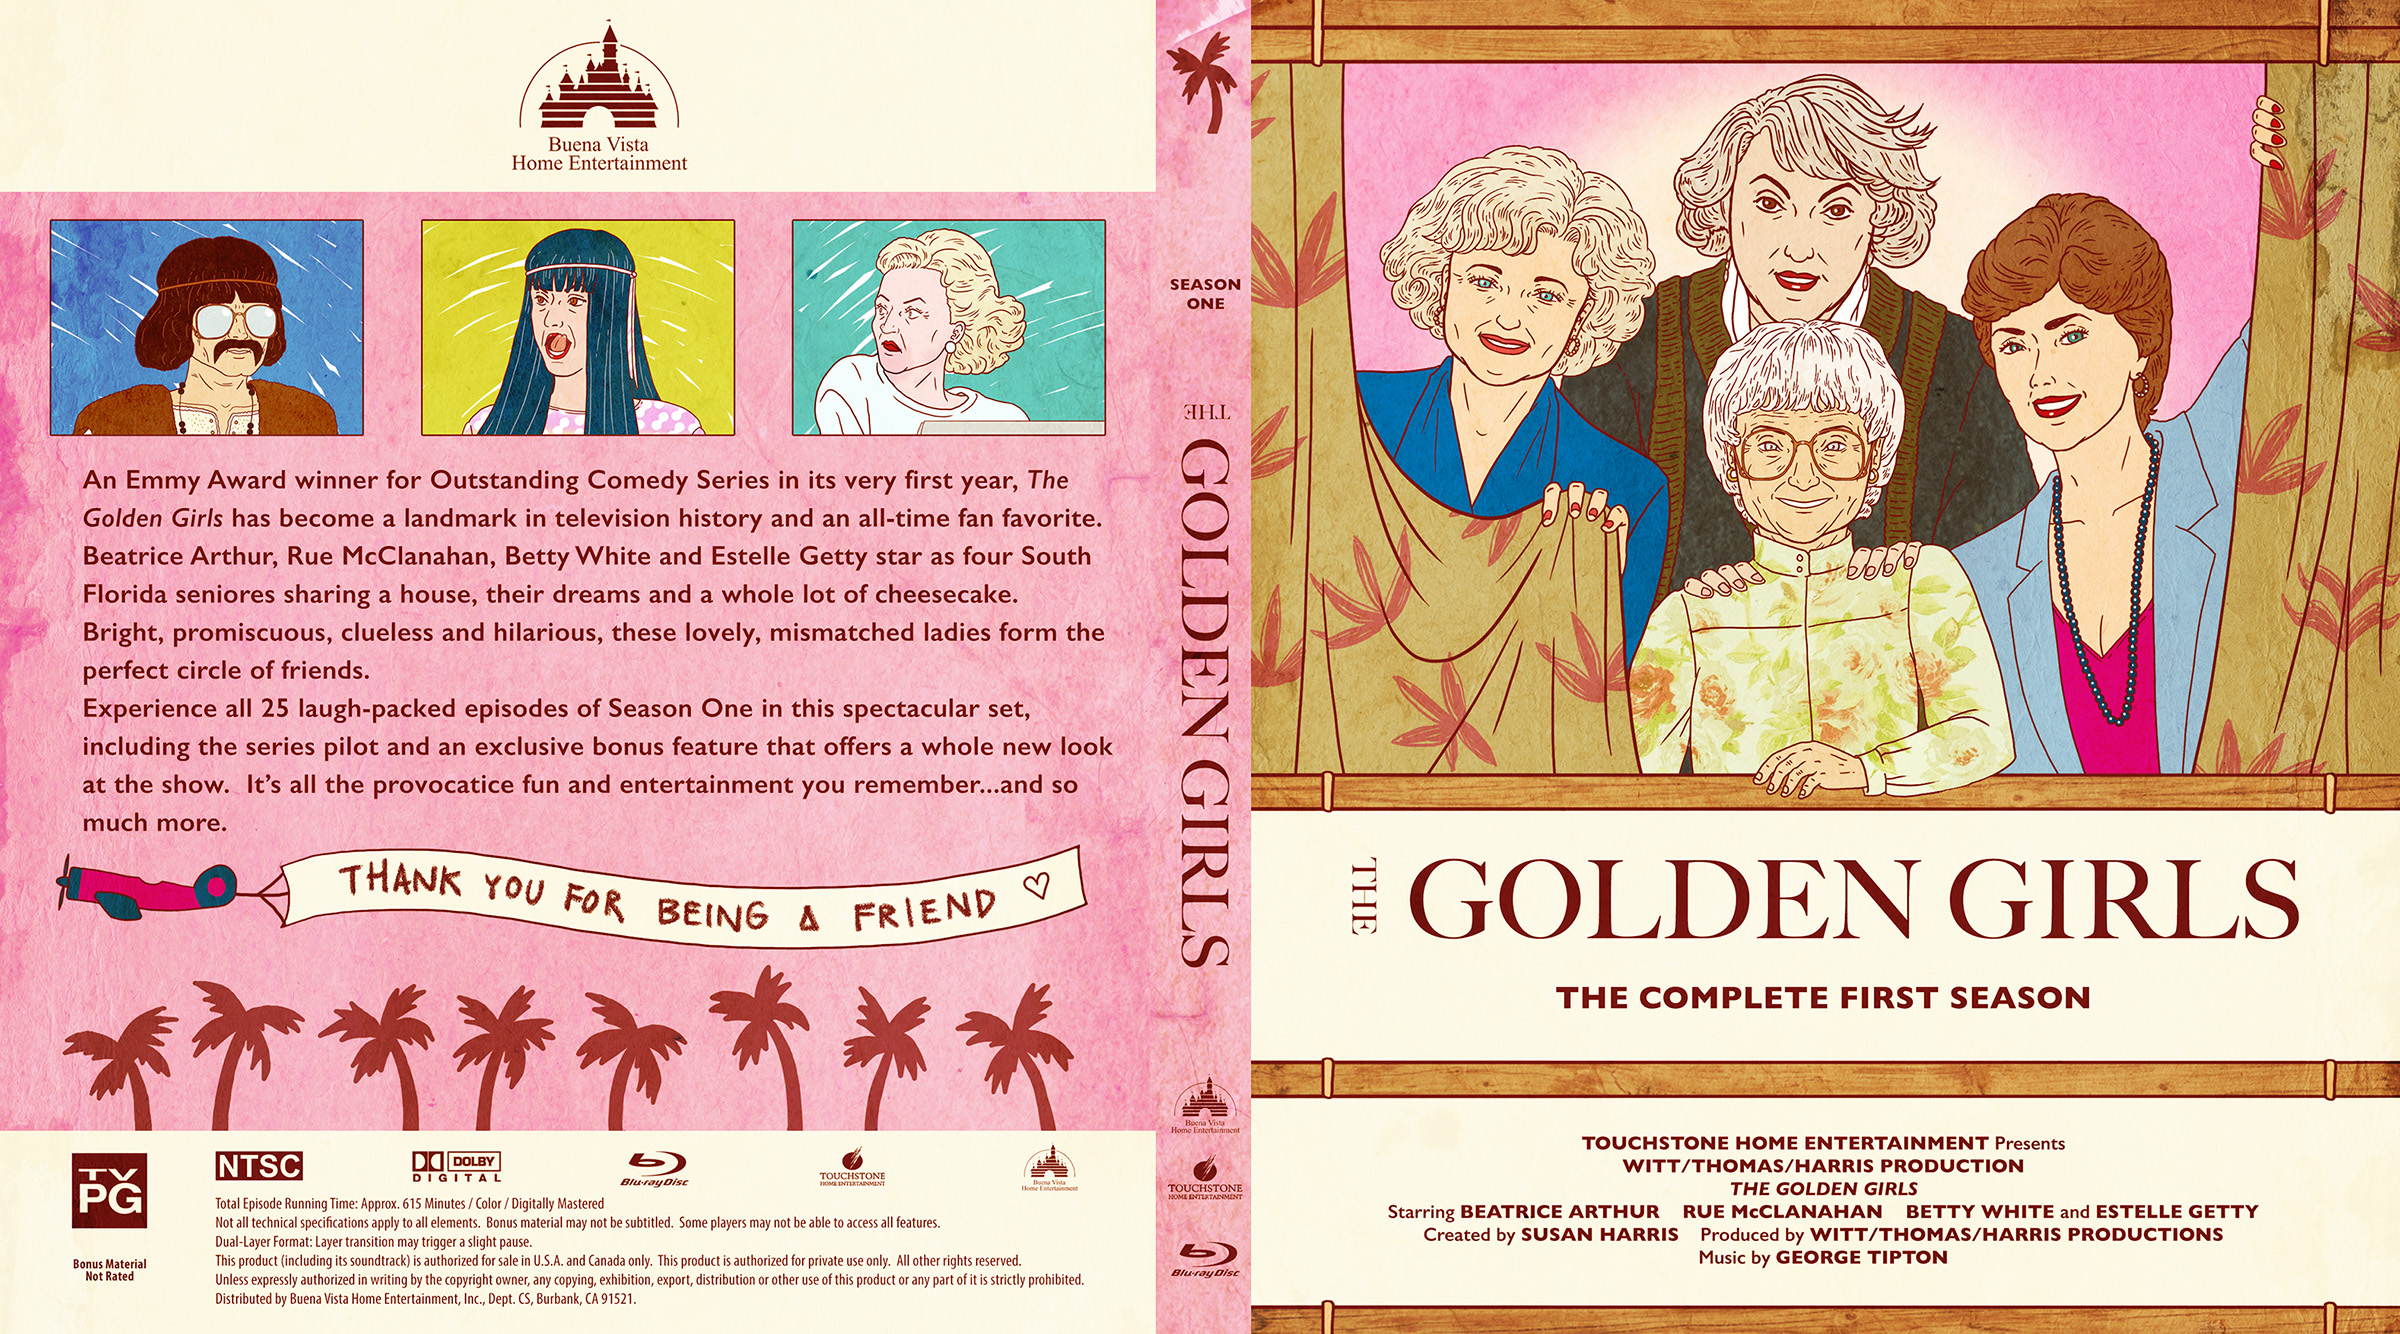 MINI-SYS.COM Shirley Susilo golden girls 1 bluray packaging disc label design file.jpg